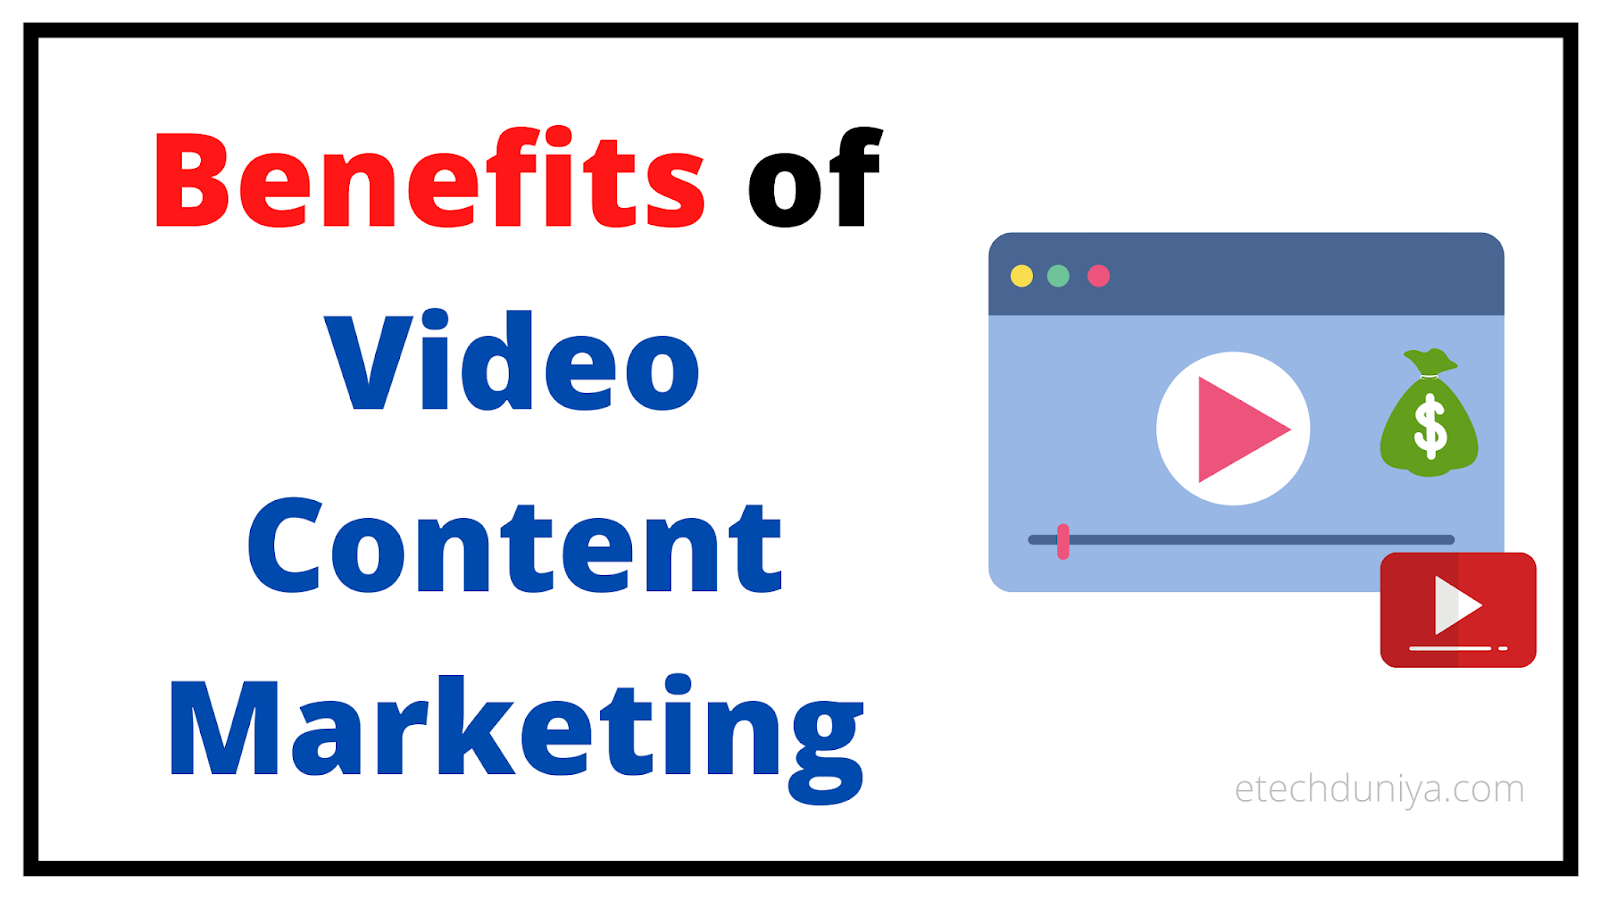 Benefits of Video Content Marketing